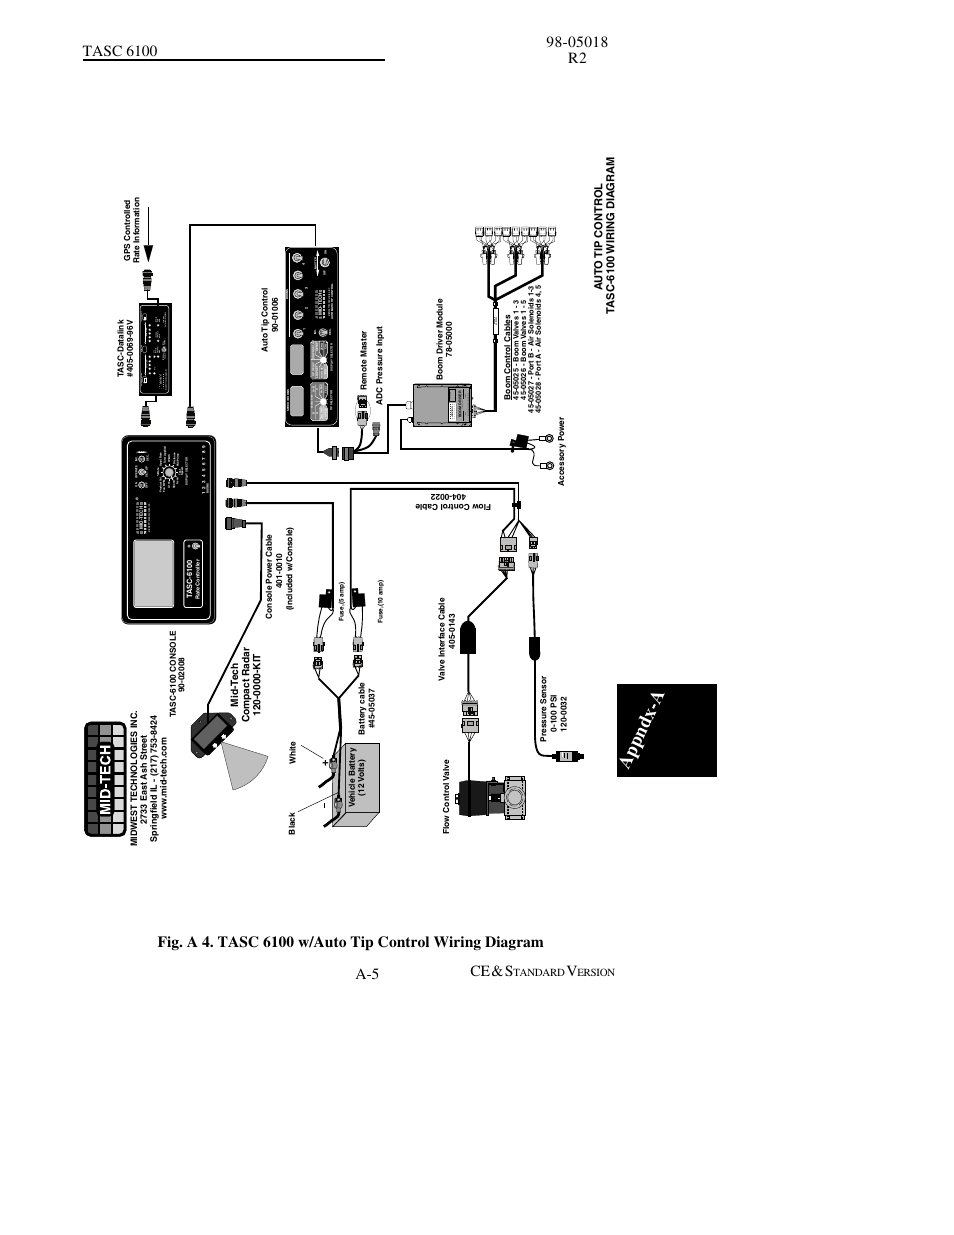 2005 Pontiac Wave Radio Wiring Diagram 2005 Pontiac